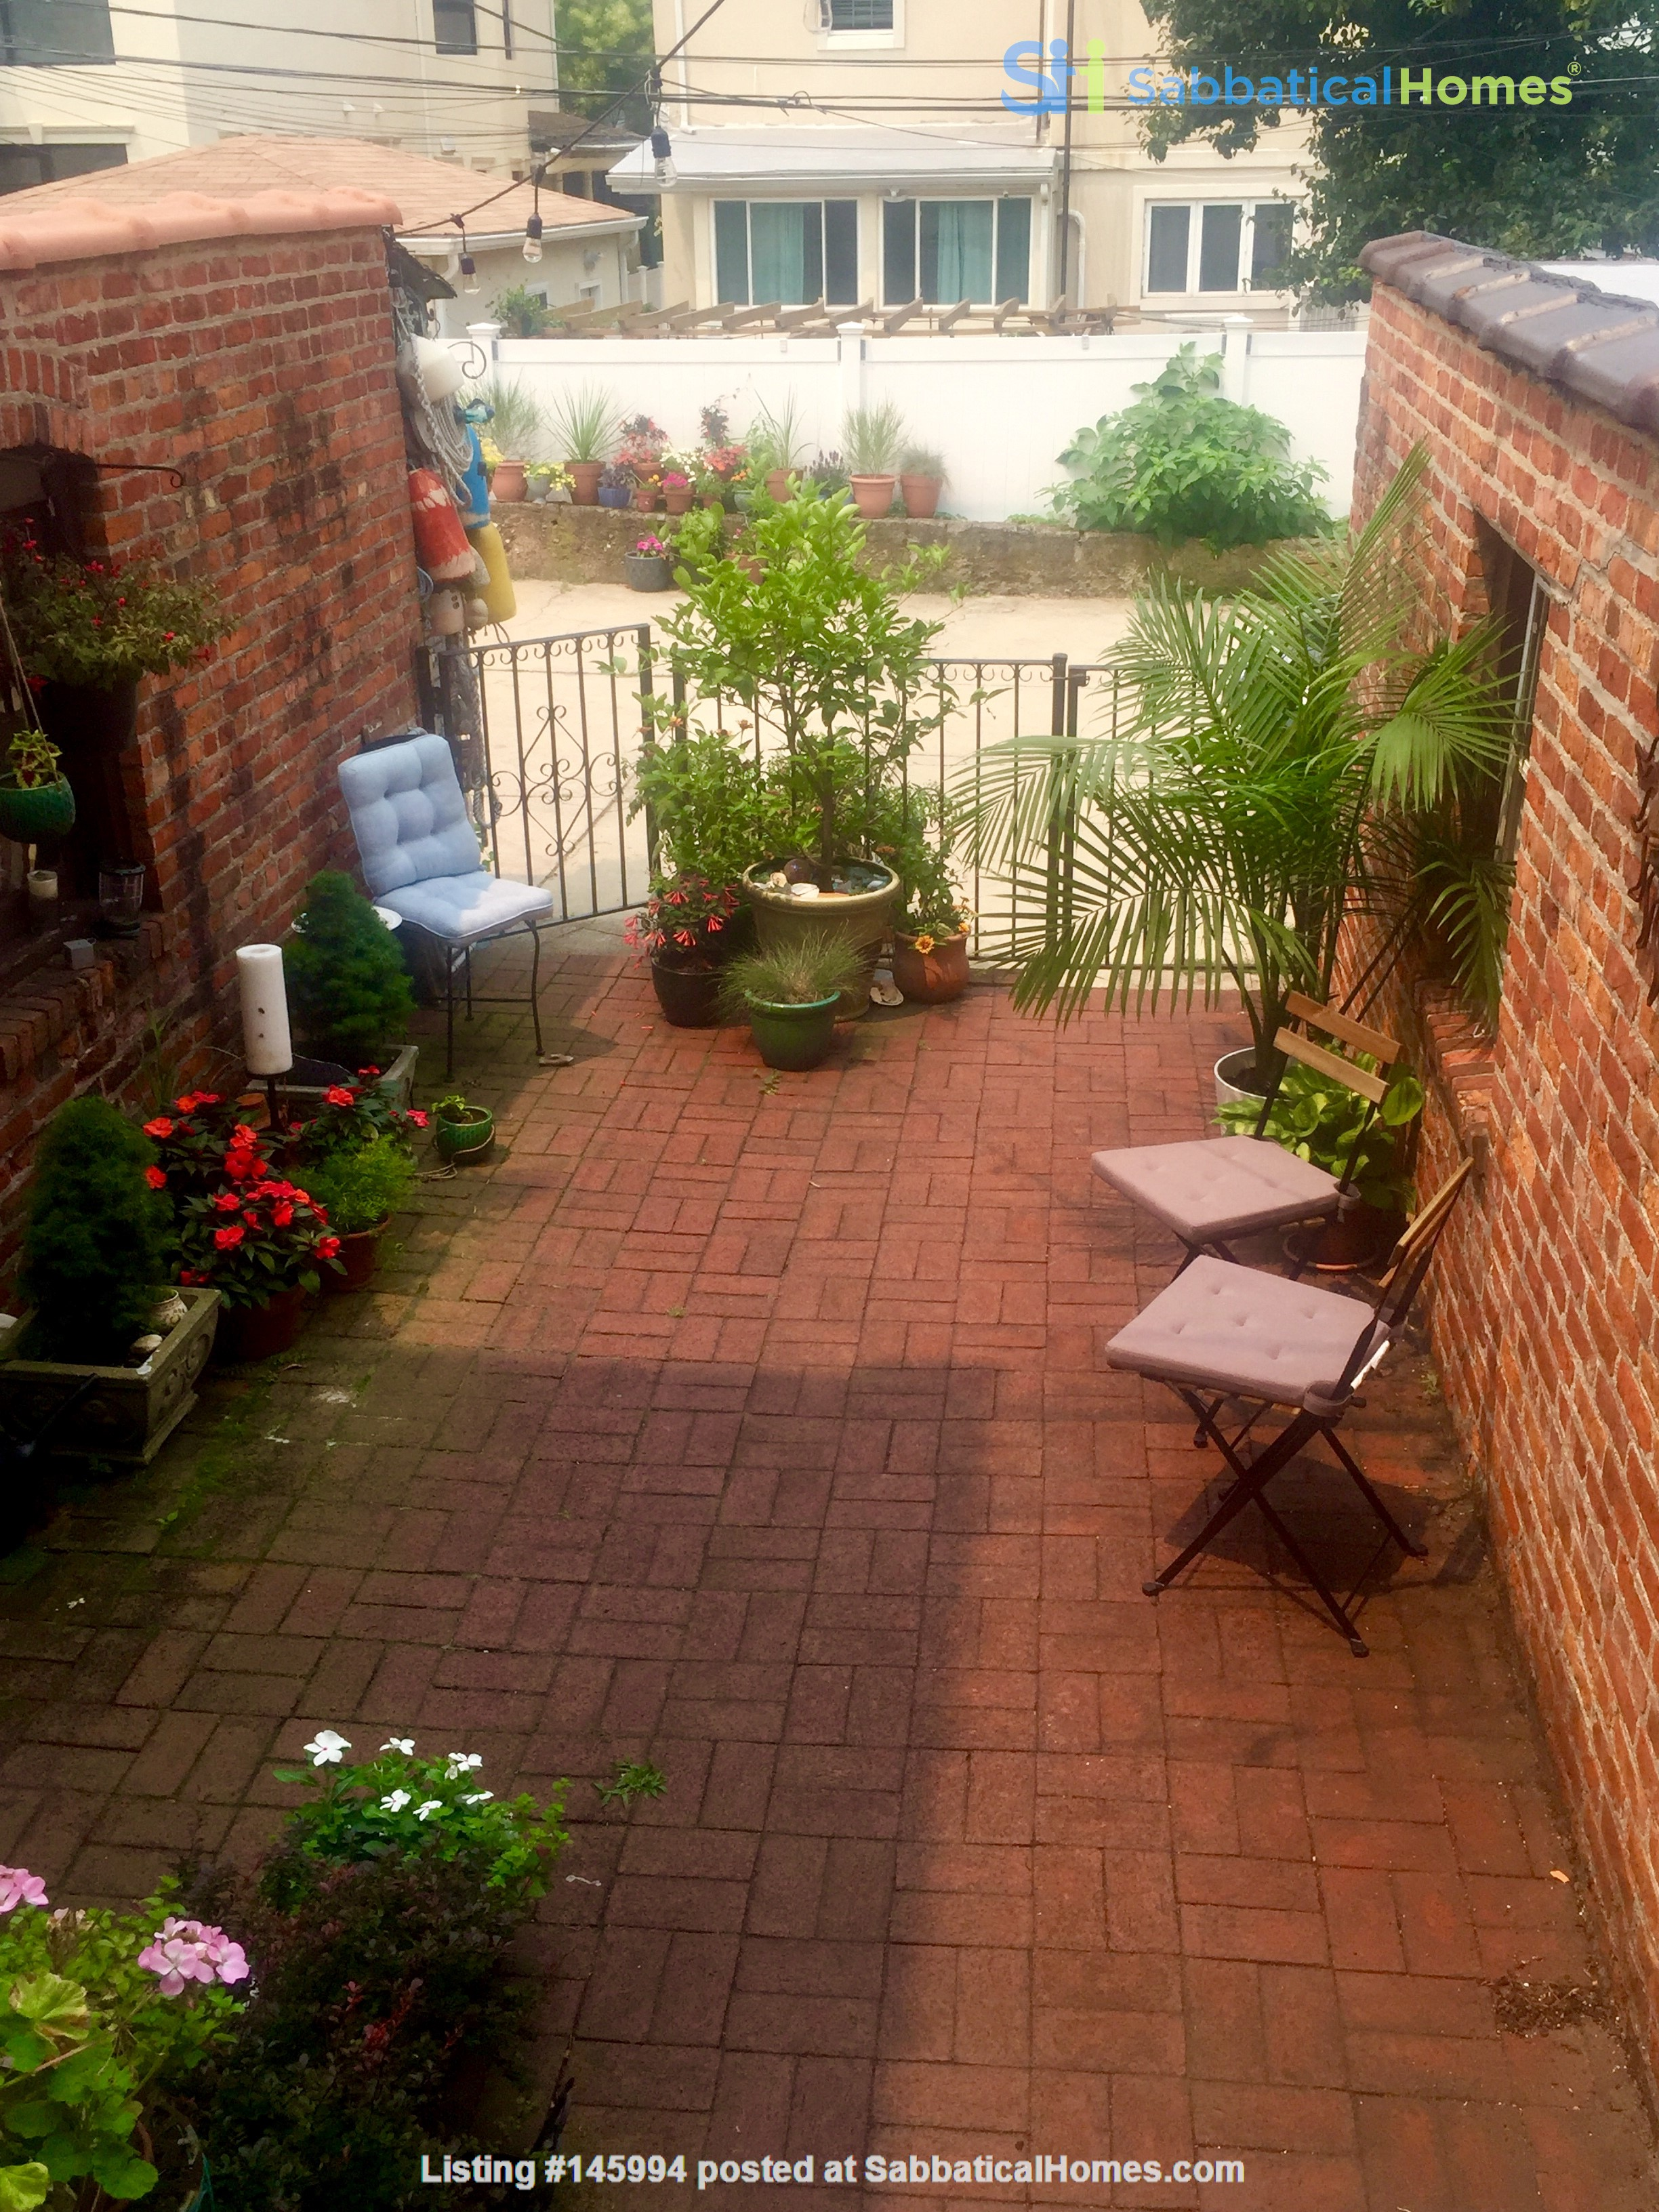 Brooklyn Jewel Box 3br/2bth House, Walking Distance to Park/Sunset Pier! Home Exchange in  7